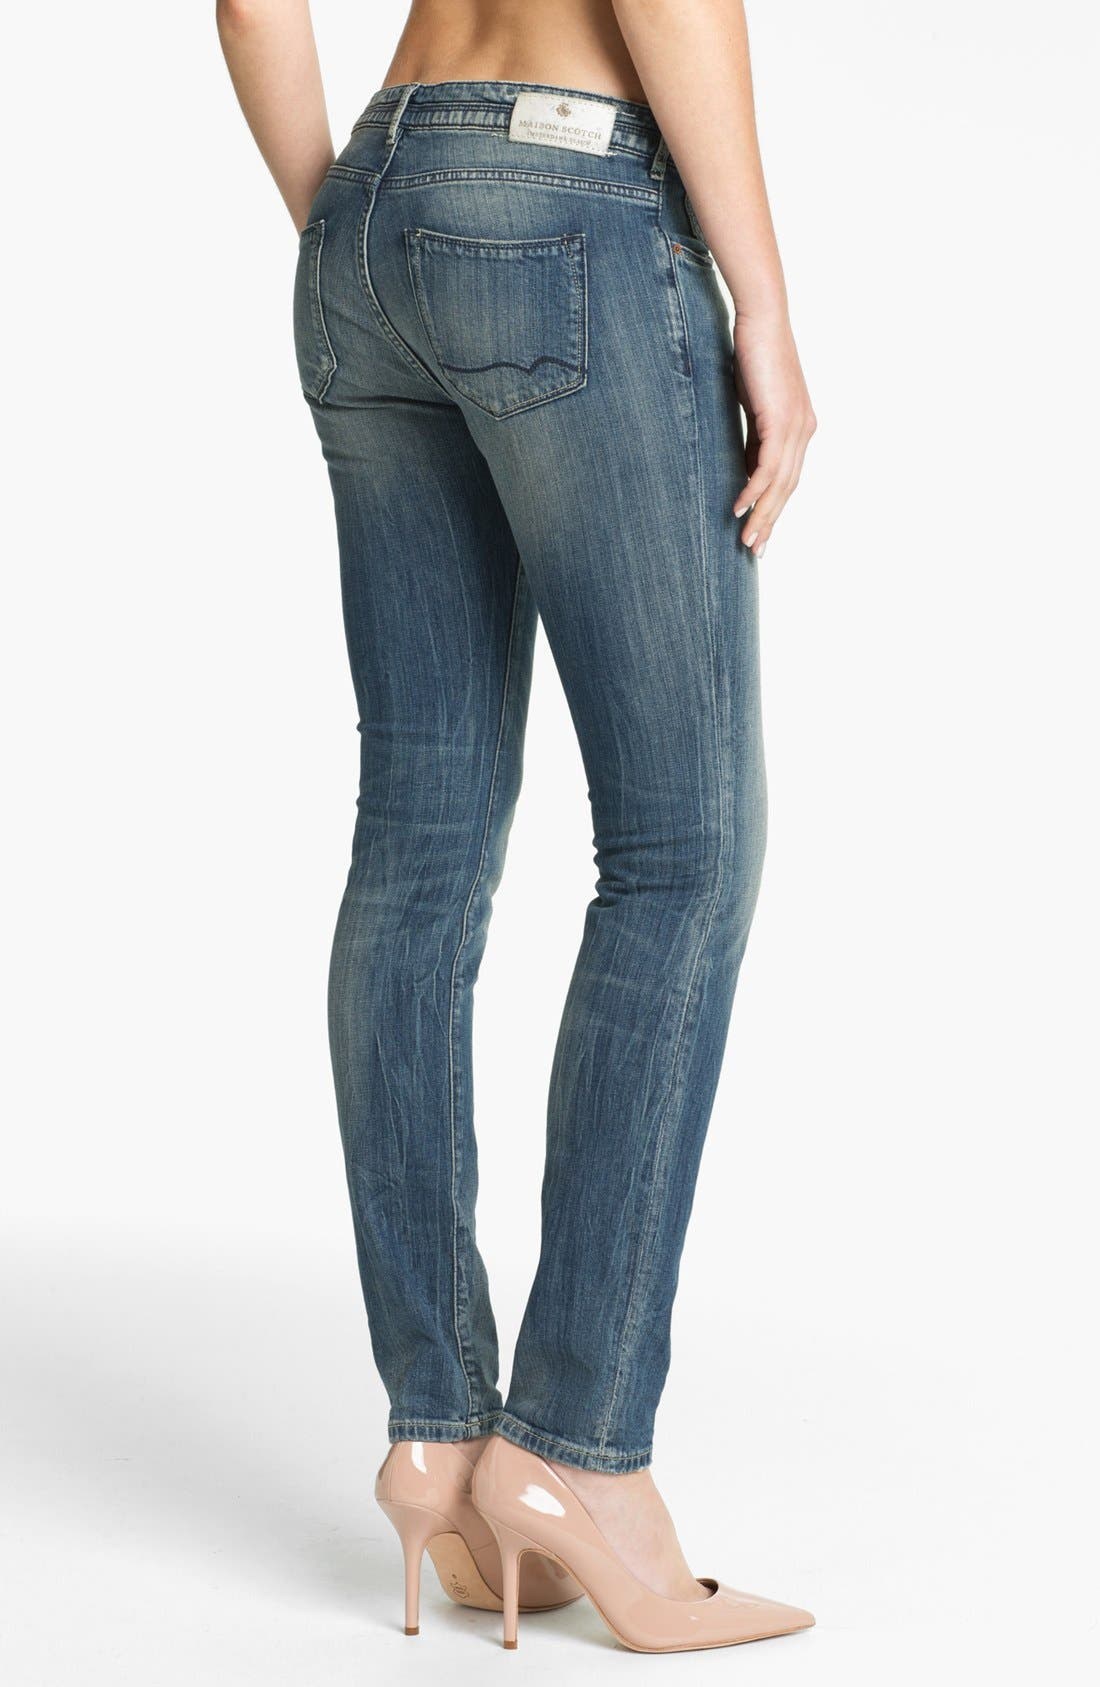 Alternate Image 2  - Maison Scotch 'La Parisienne' Bleach Washed Skinny Jeans (Bleutiful)